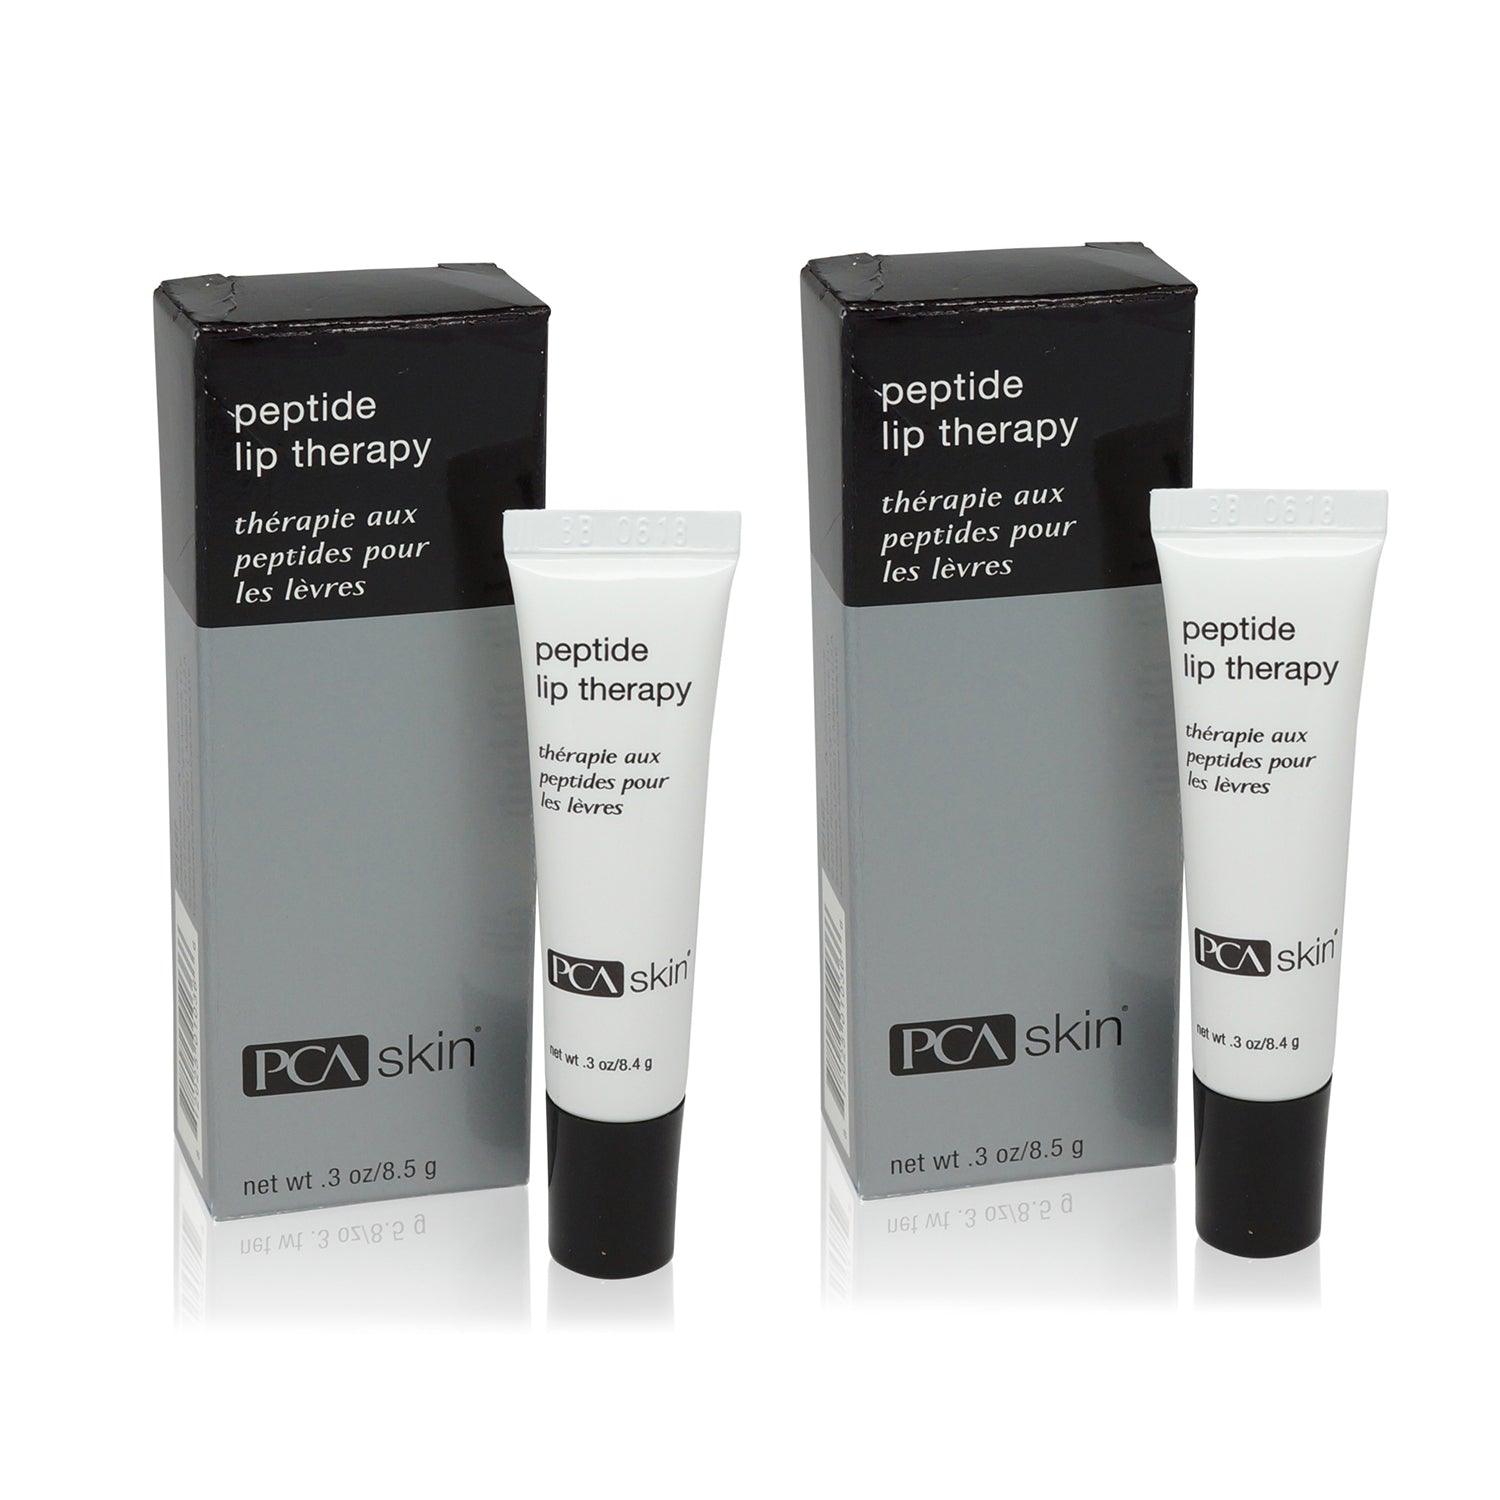 PCA SKIN ~ PEPTIDE LIP THERAPY 0.3 OZ  2 PACK